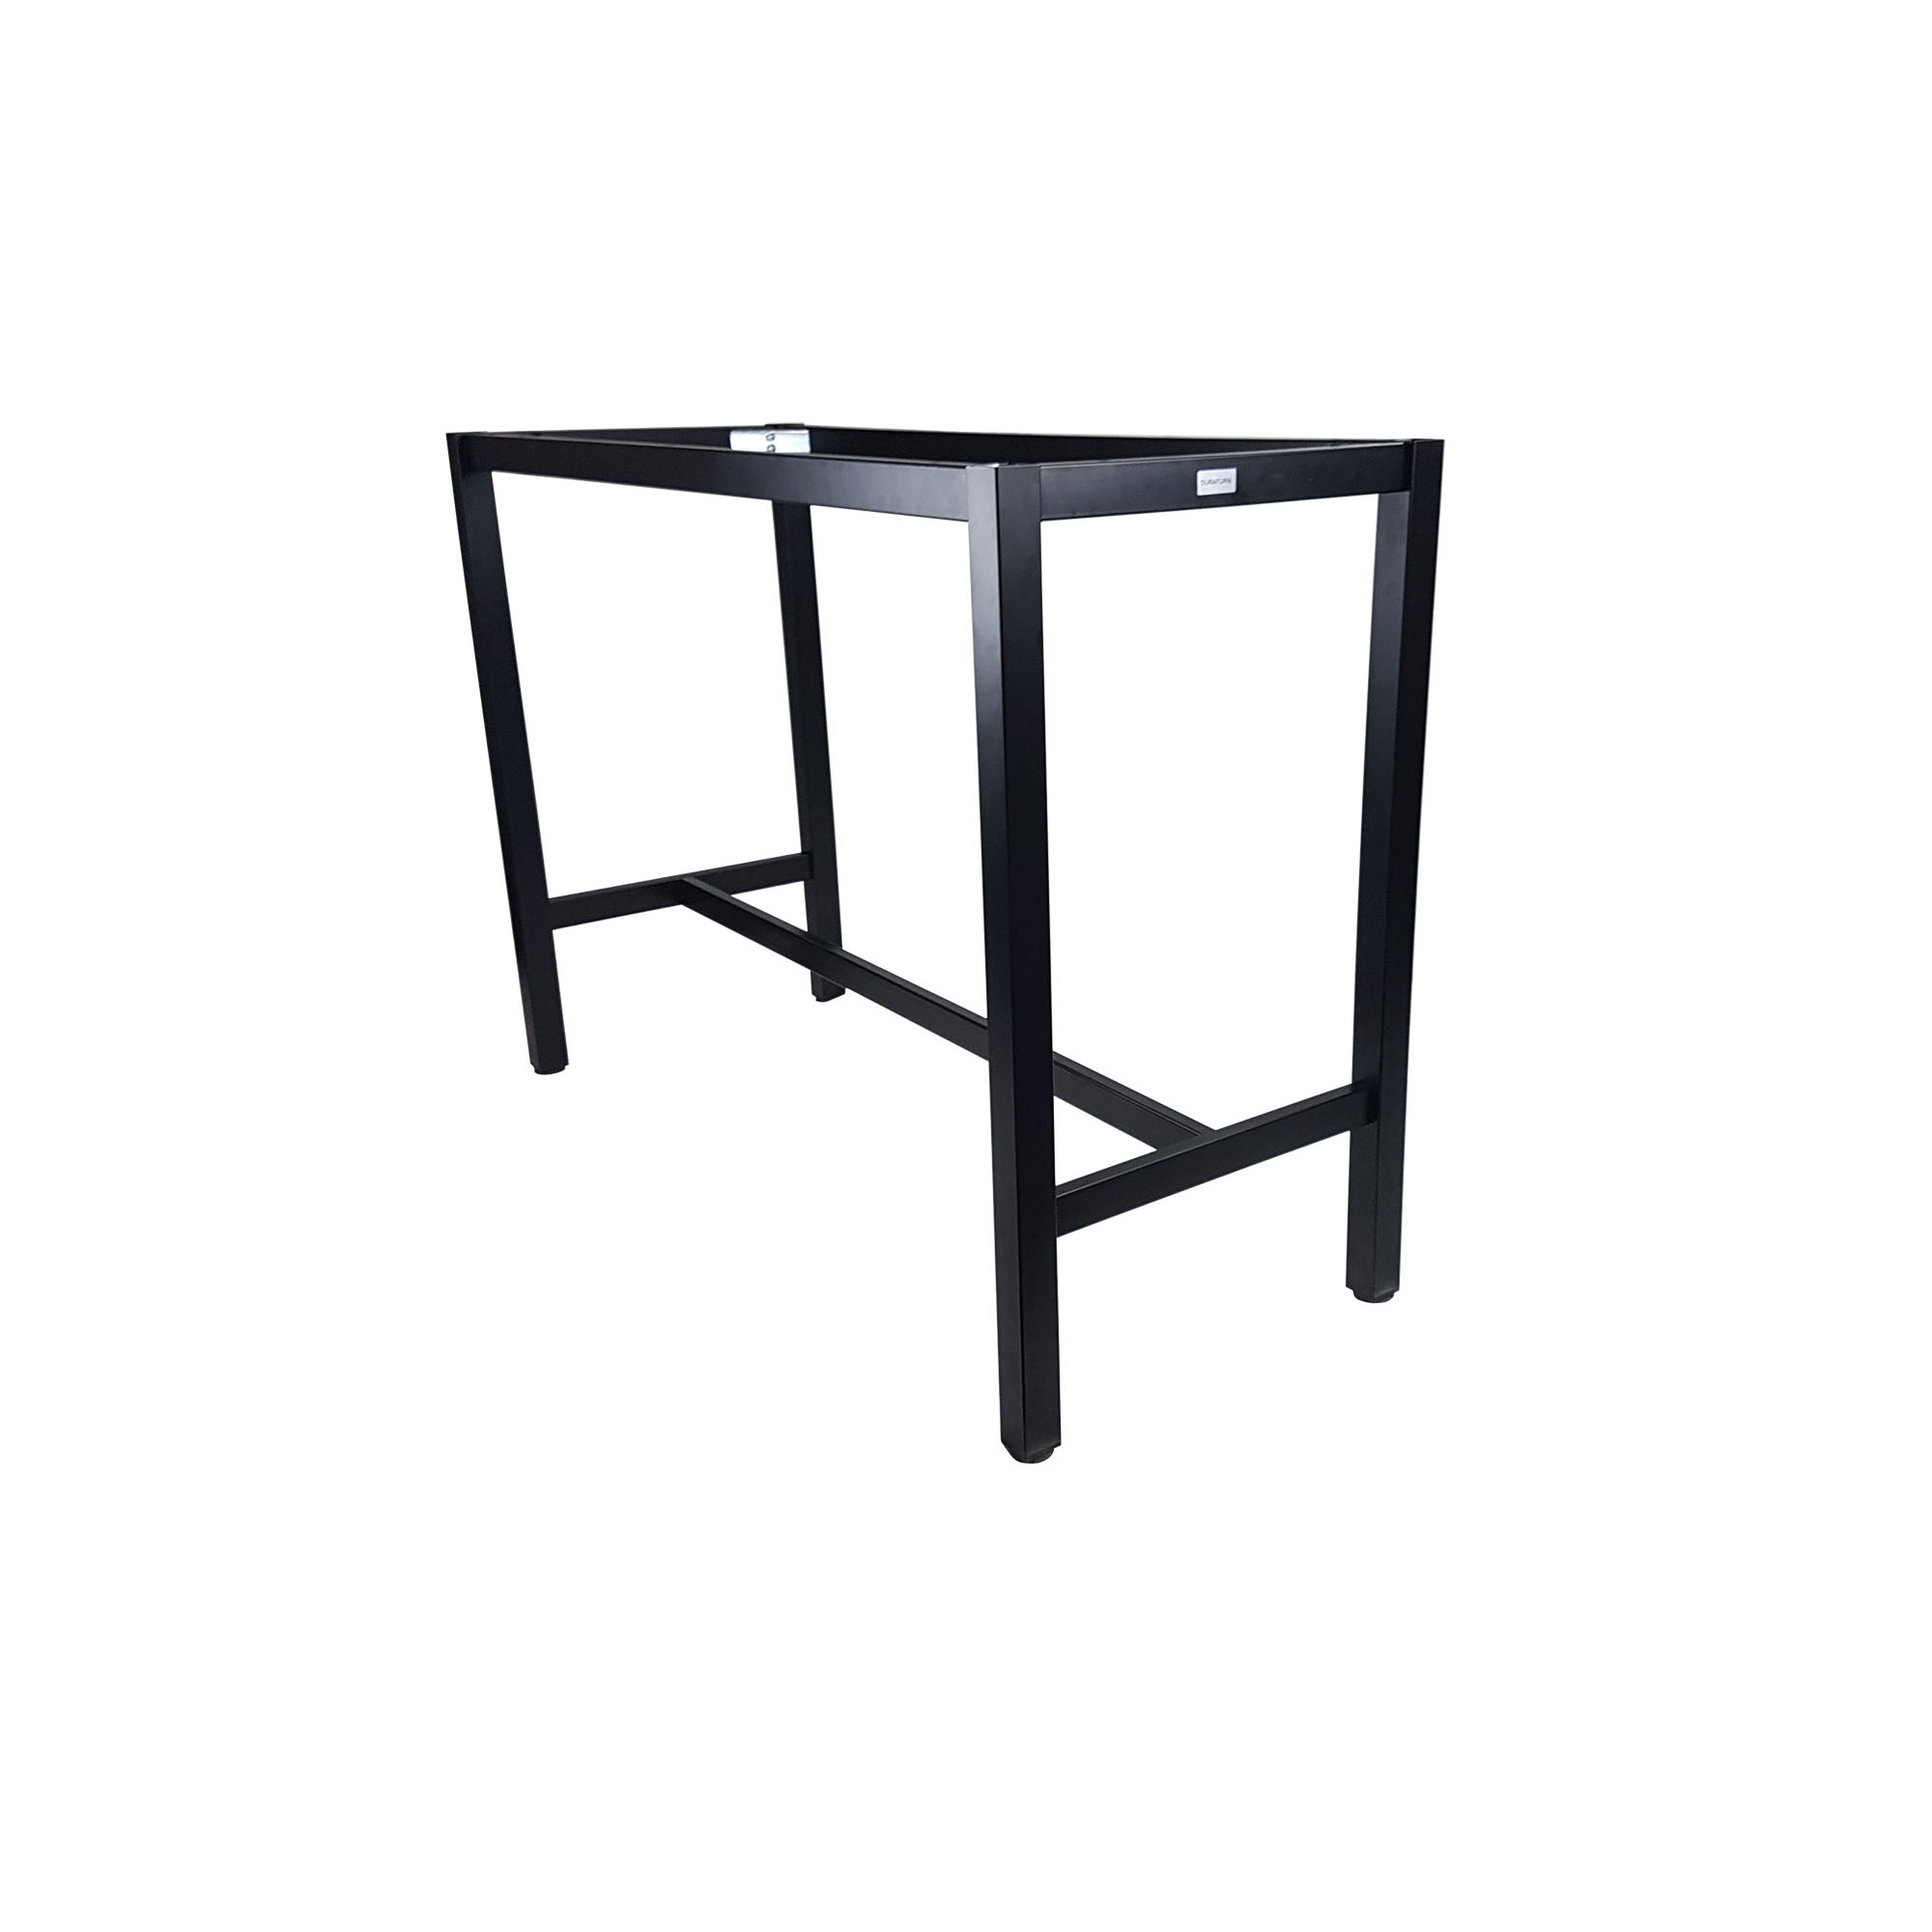 Preston Aluminium Dry Bar Frame - Black